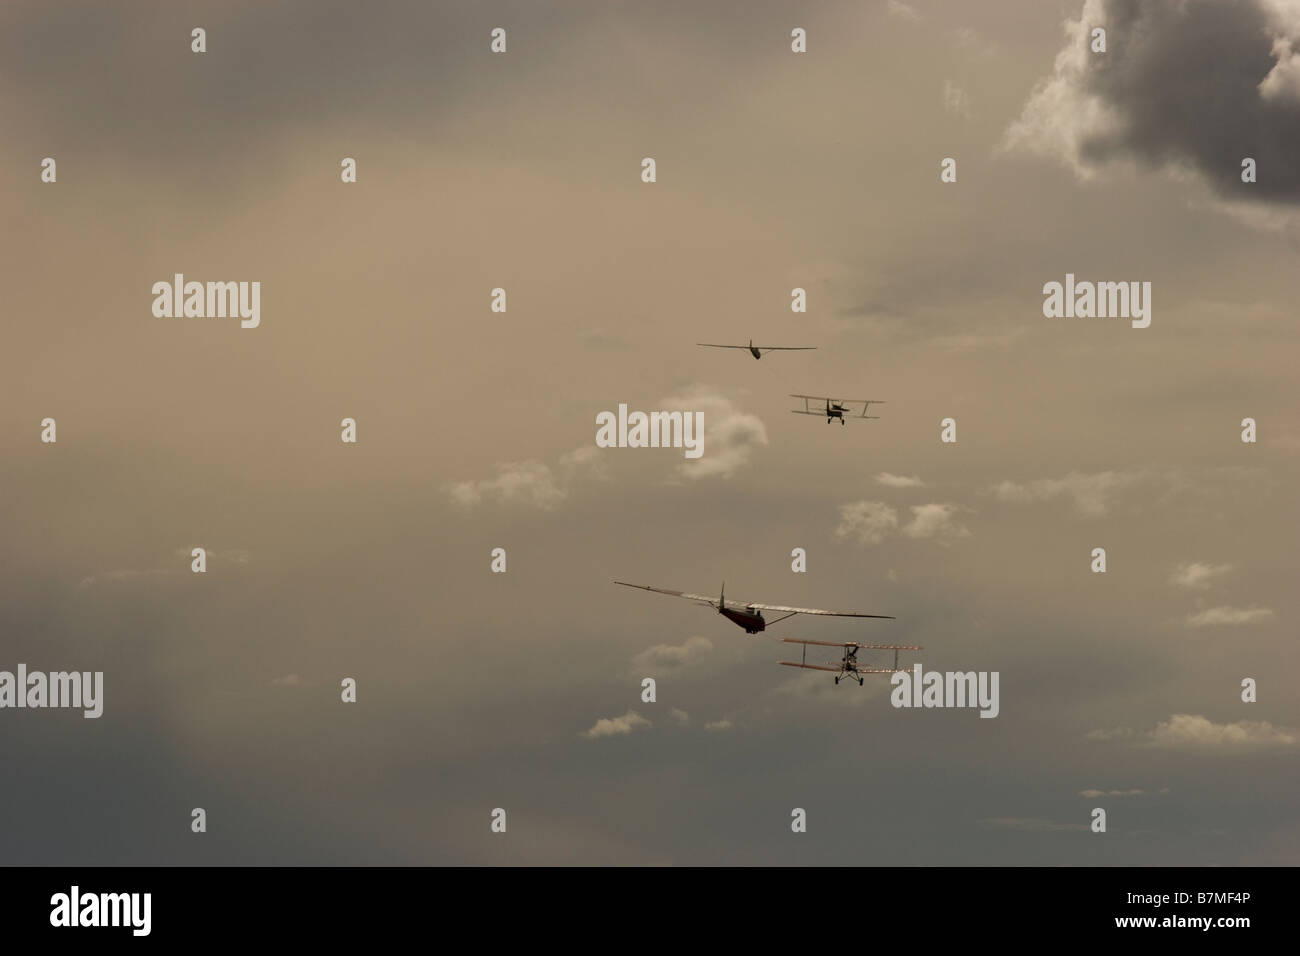 Pulling up gliding planes - Stock Image